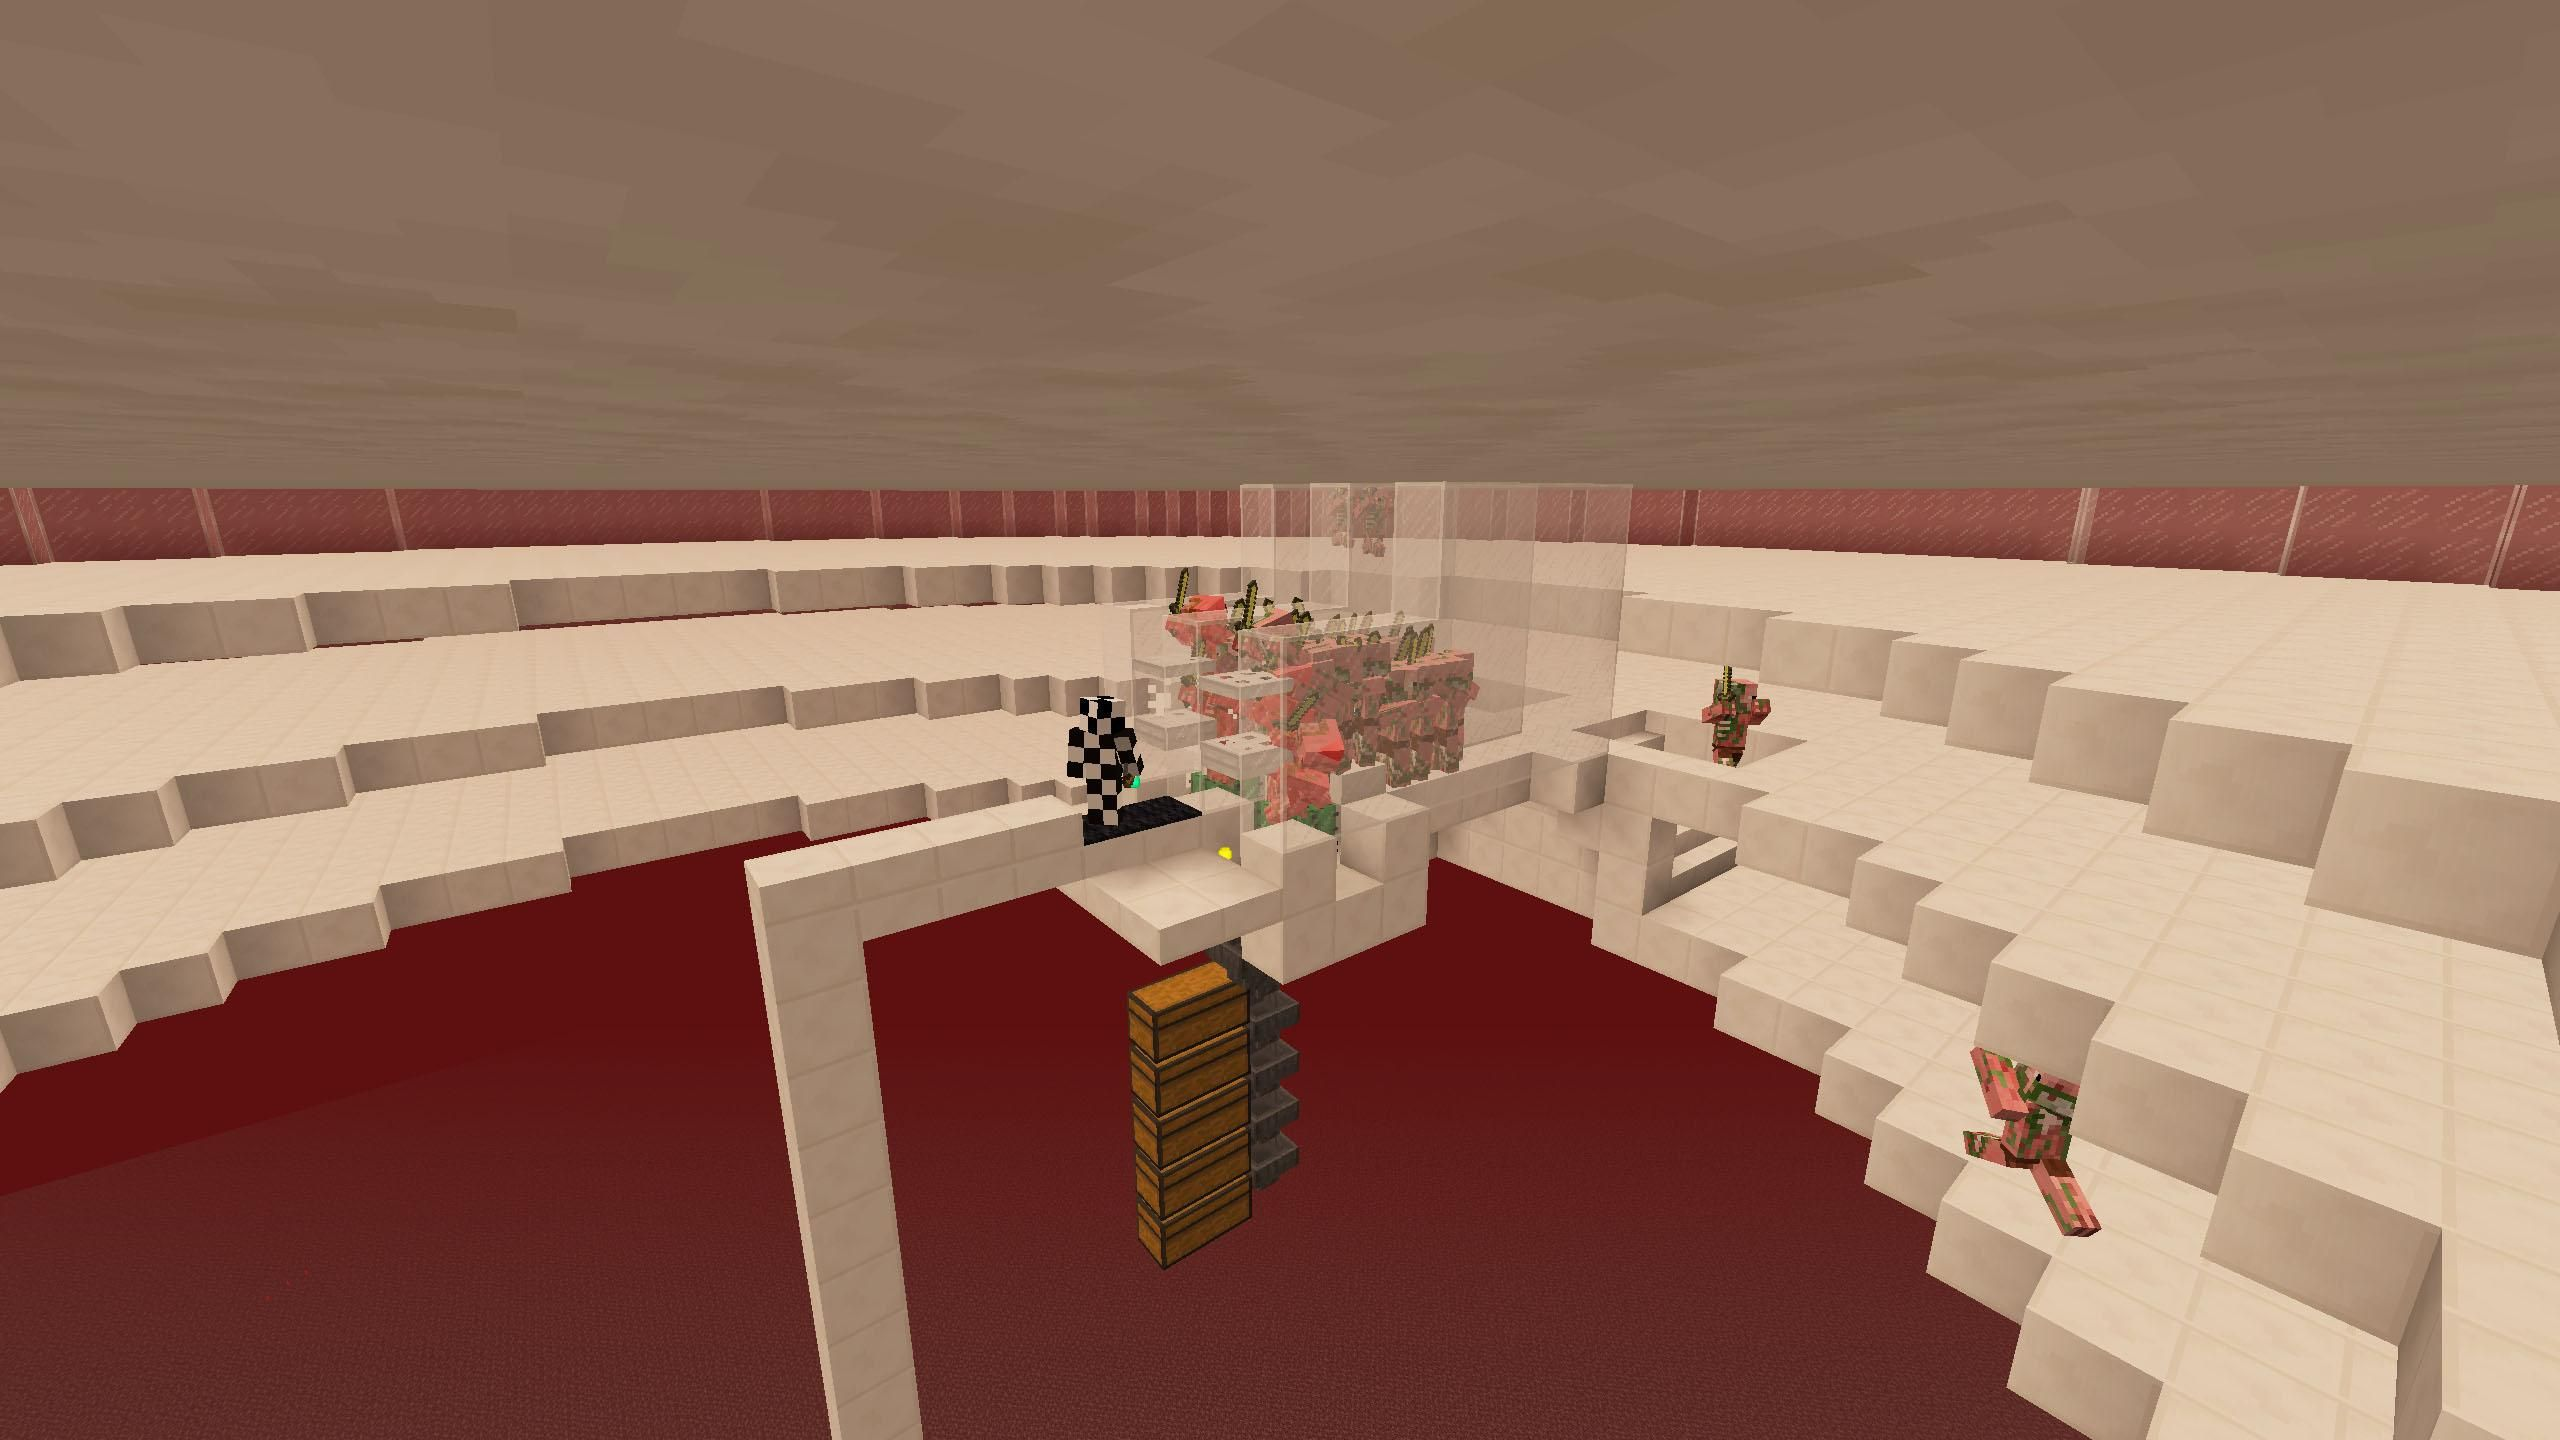 Simple afk gold and xp farm (no redstone) | Minecraft | Pinterest